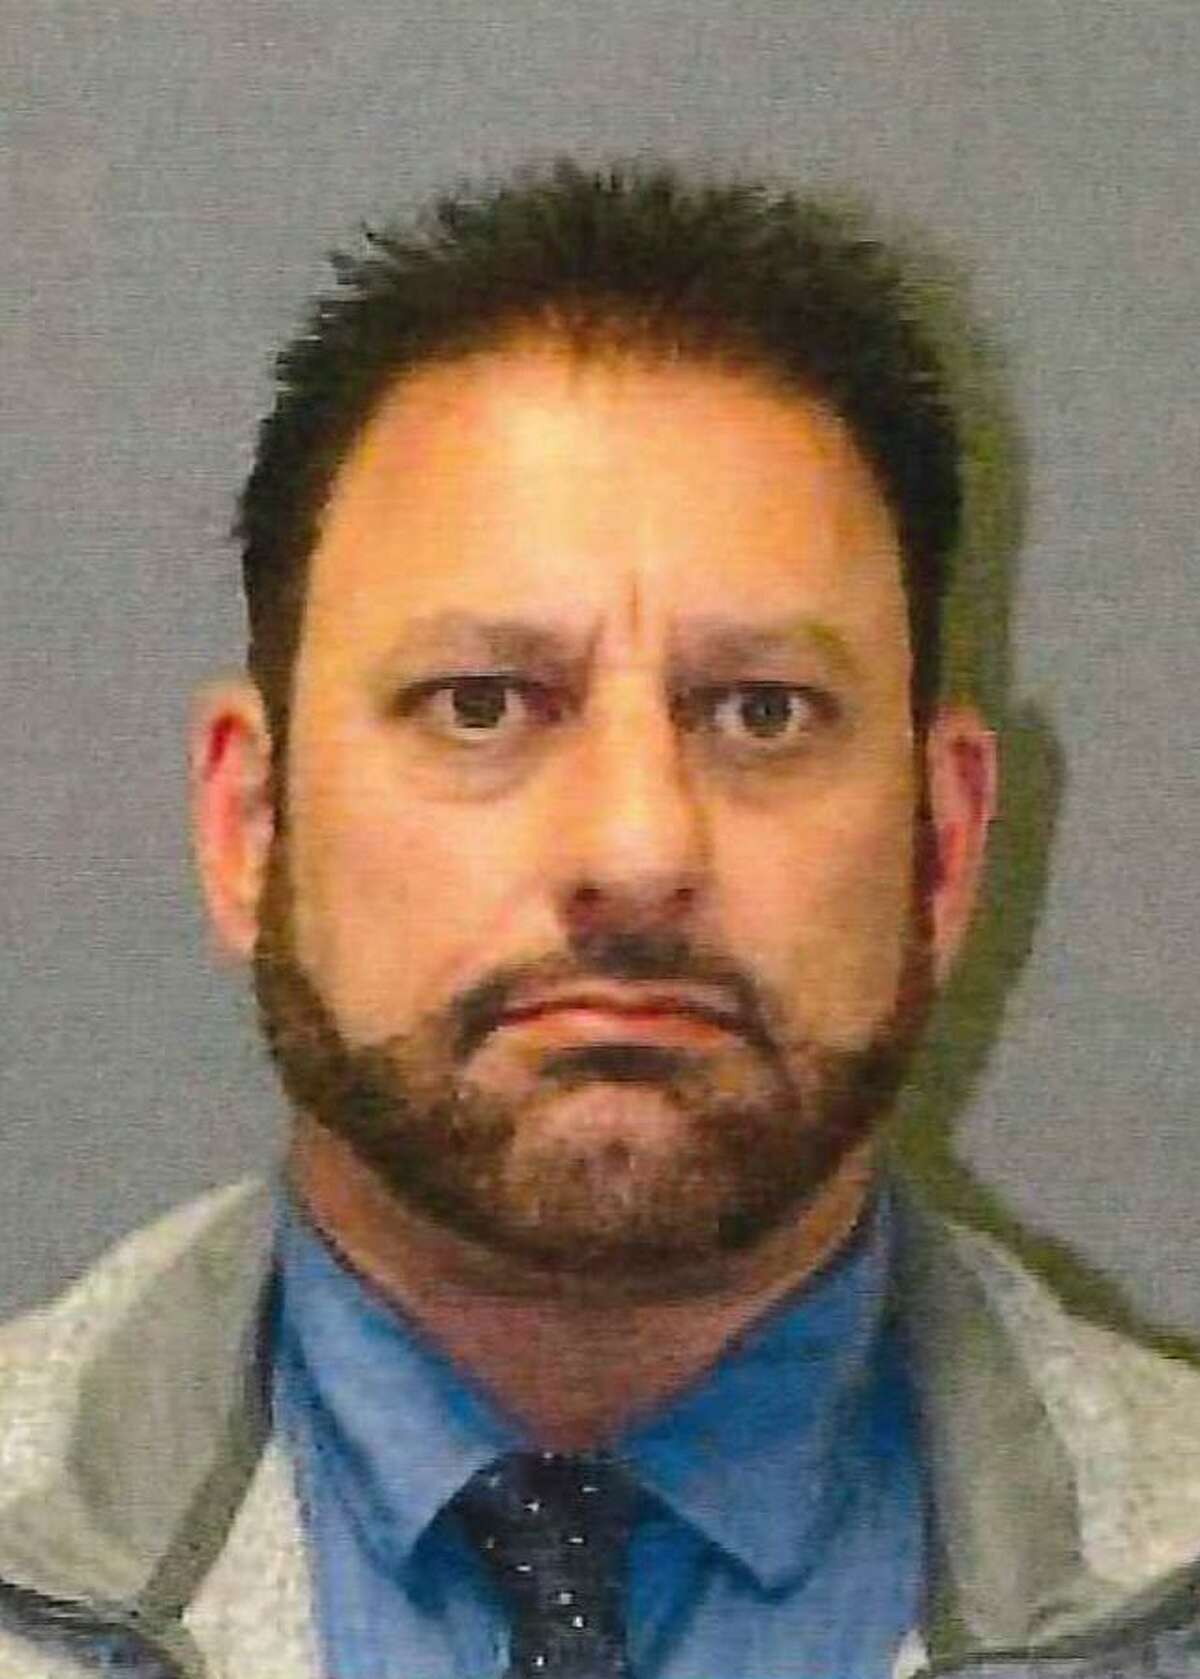 Former West Haven police Sgt. David Tammaro, shown in the mugshot, was arrested Wednesday morning, Oct. 31, 2018 by Connecticut State Police and charged with 87 counts of 2nd Degree Forgery. Tammaro was released on a $10,000 bond and is scheduled to appear in Milford Superior Court on Nov. 13.